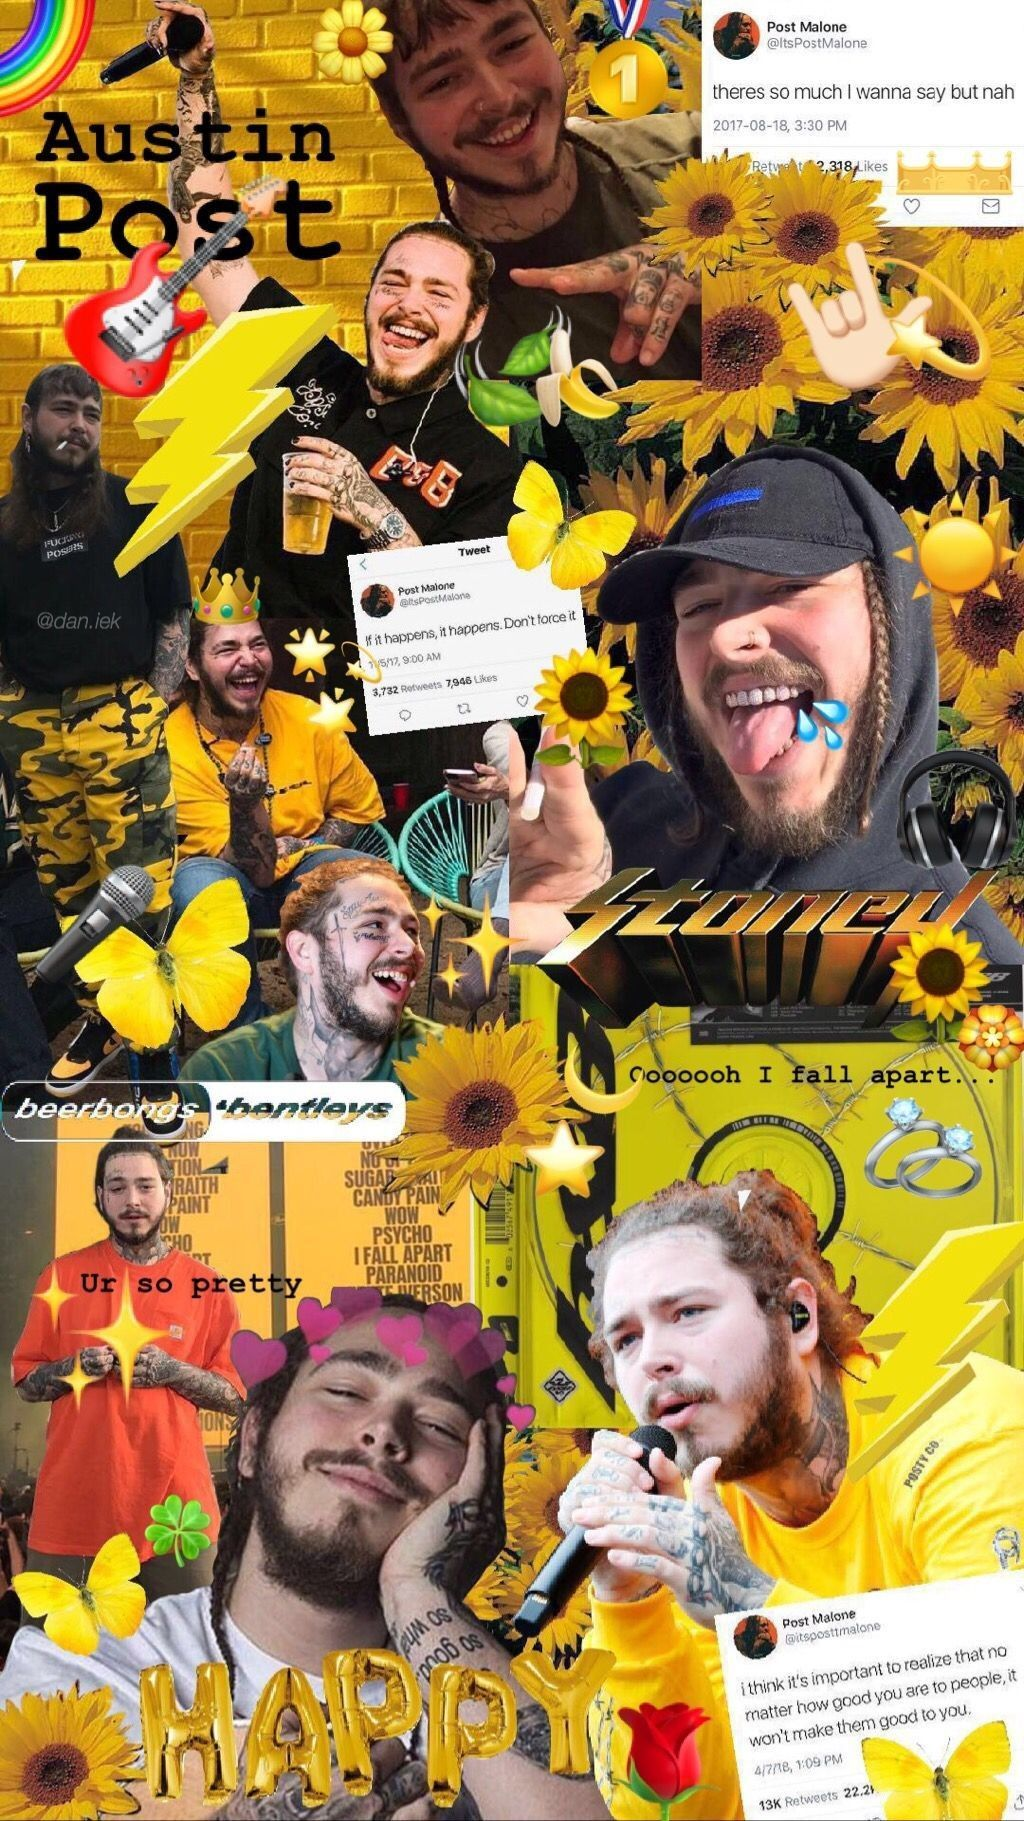 Post Malone Aesthetic Wallpapers Top Free Post Malone Aesthetic Backgrounds Wallpaperaccess